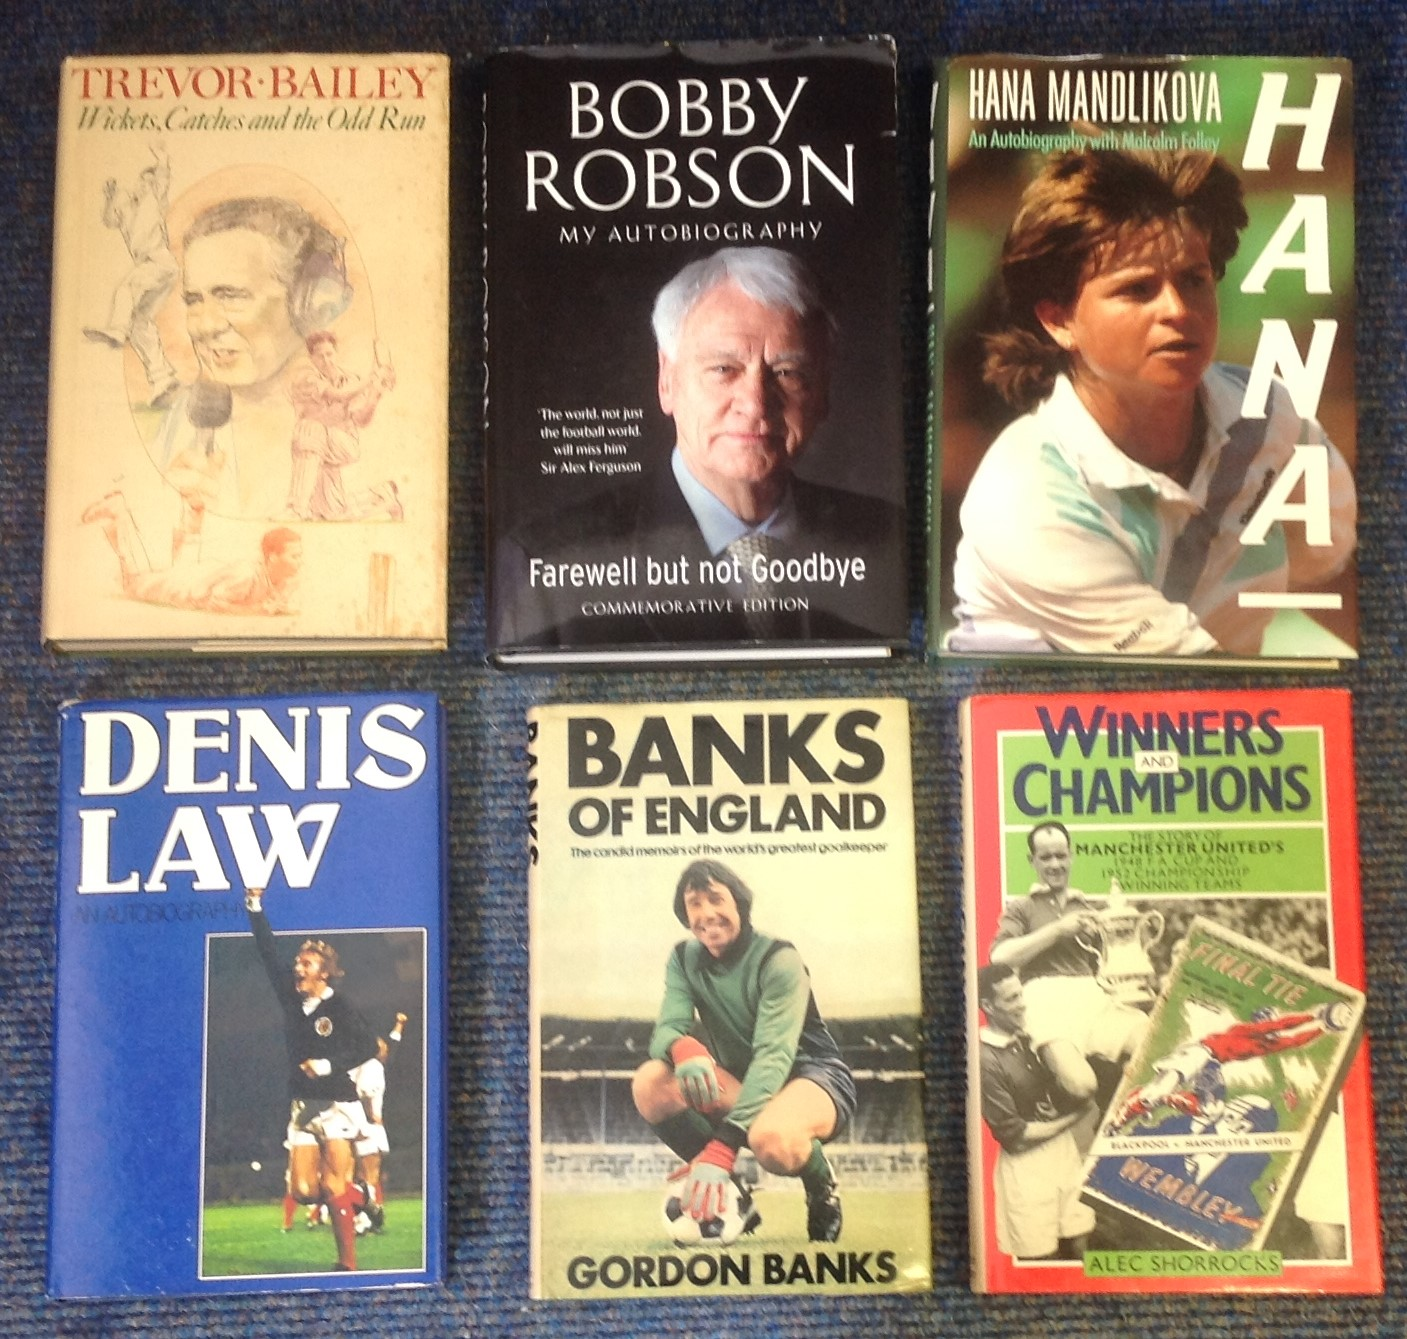 Lot 15 - Sport Book collection, 6 signed hard back books includes signatures from Bobby Robson, Denis Law,